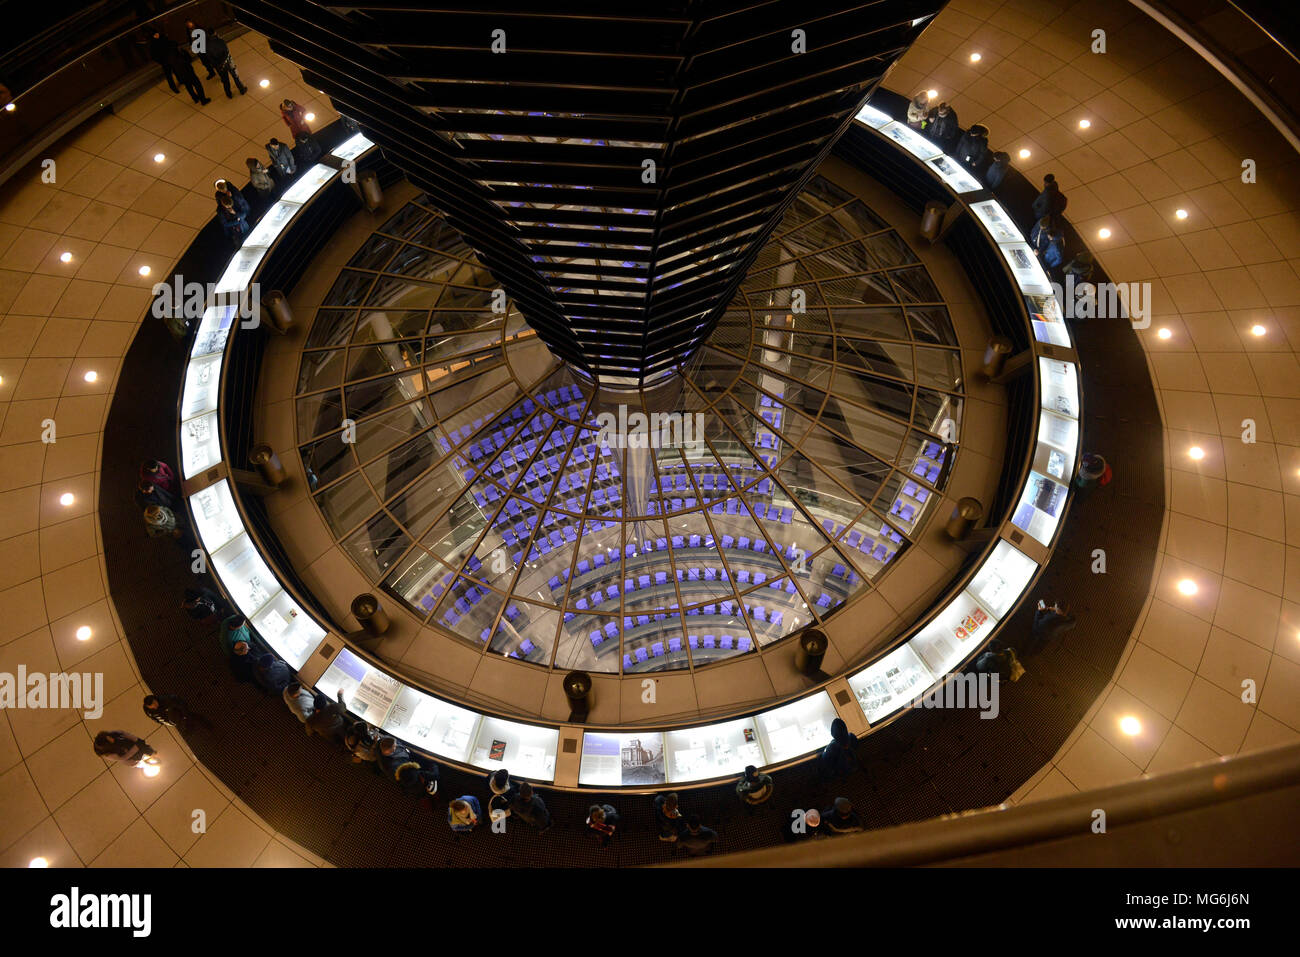 Modern glass dome structure at Reichstag Building, Berlin, at night by British architect Norman Foster - Stock Image